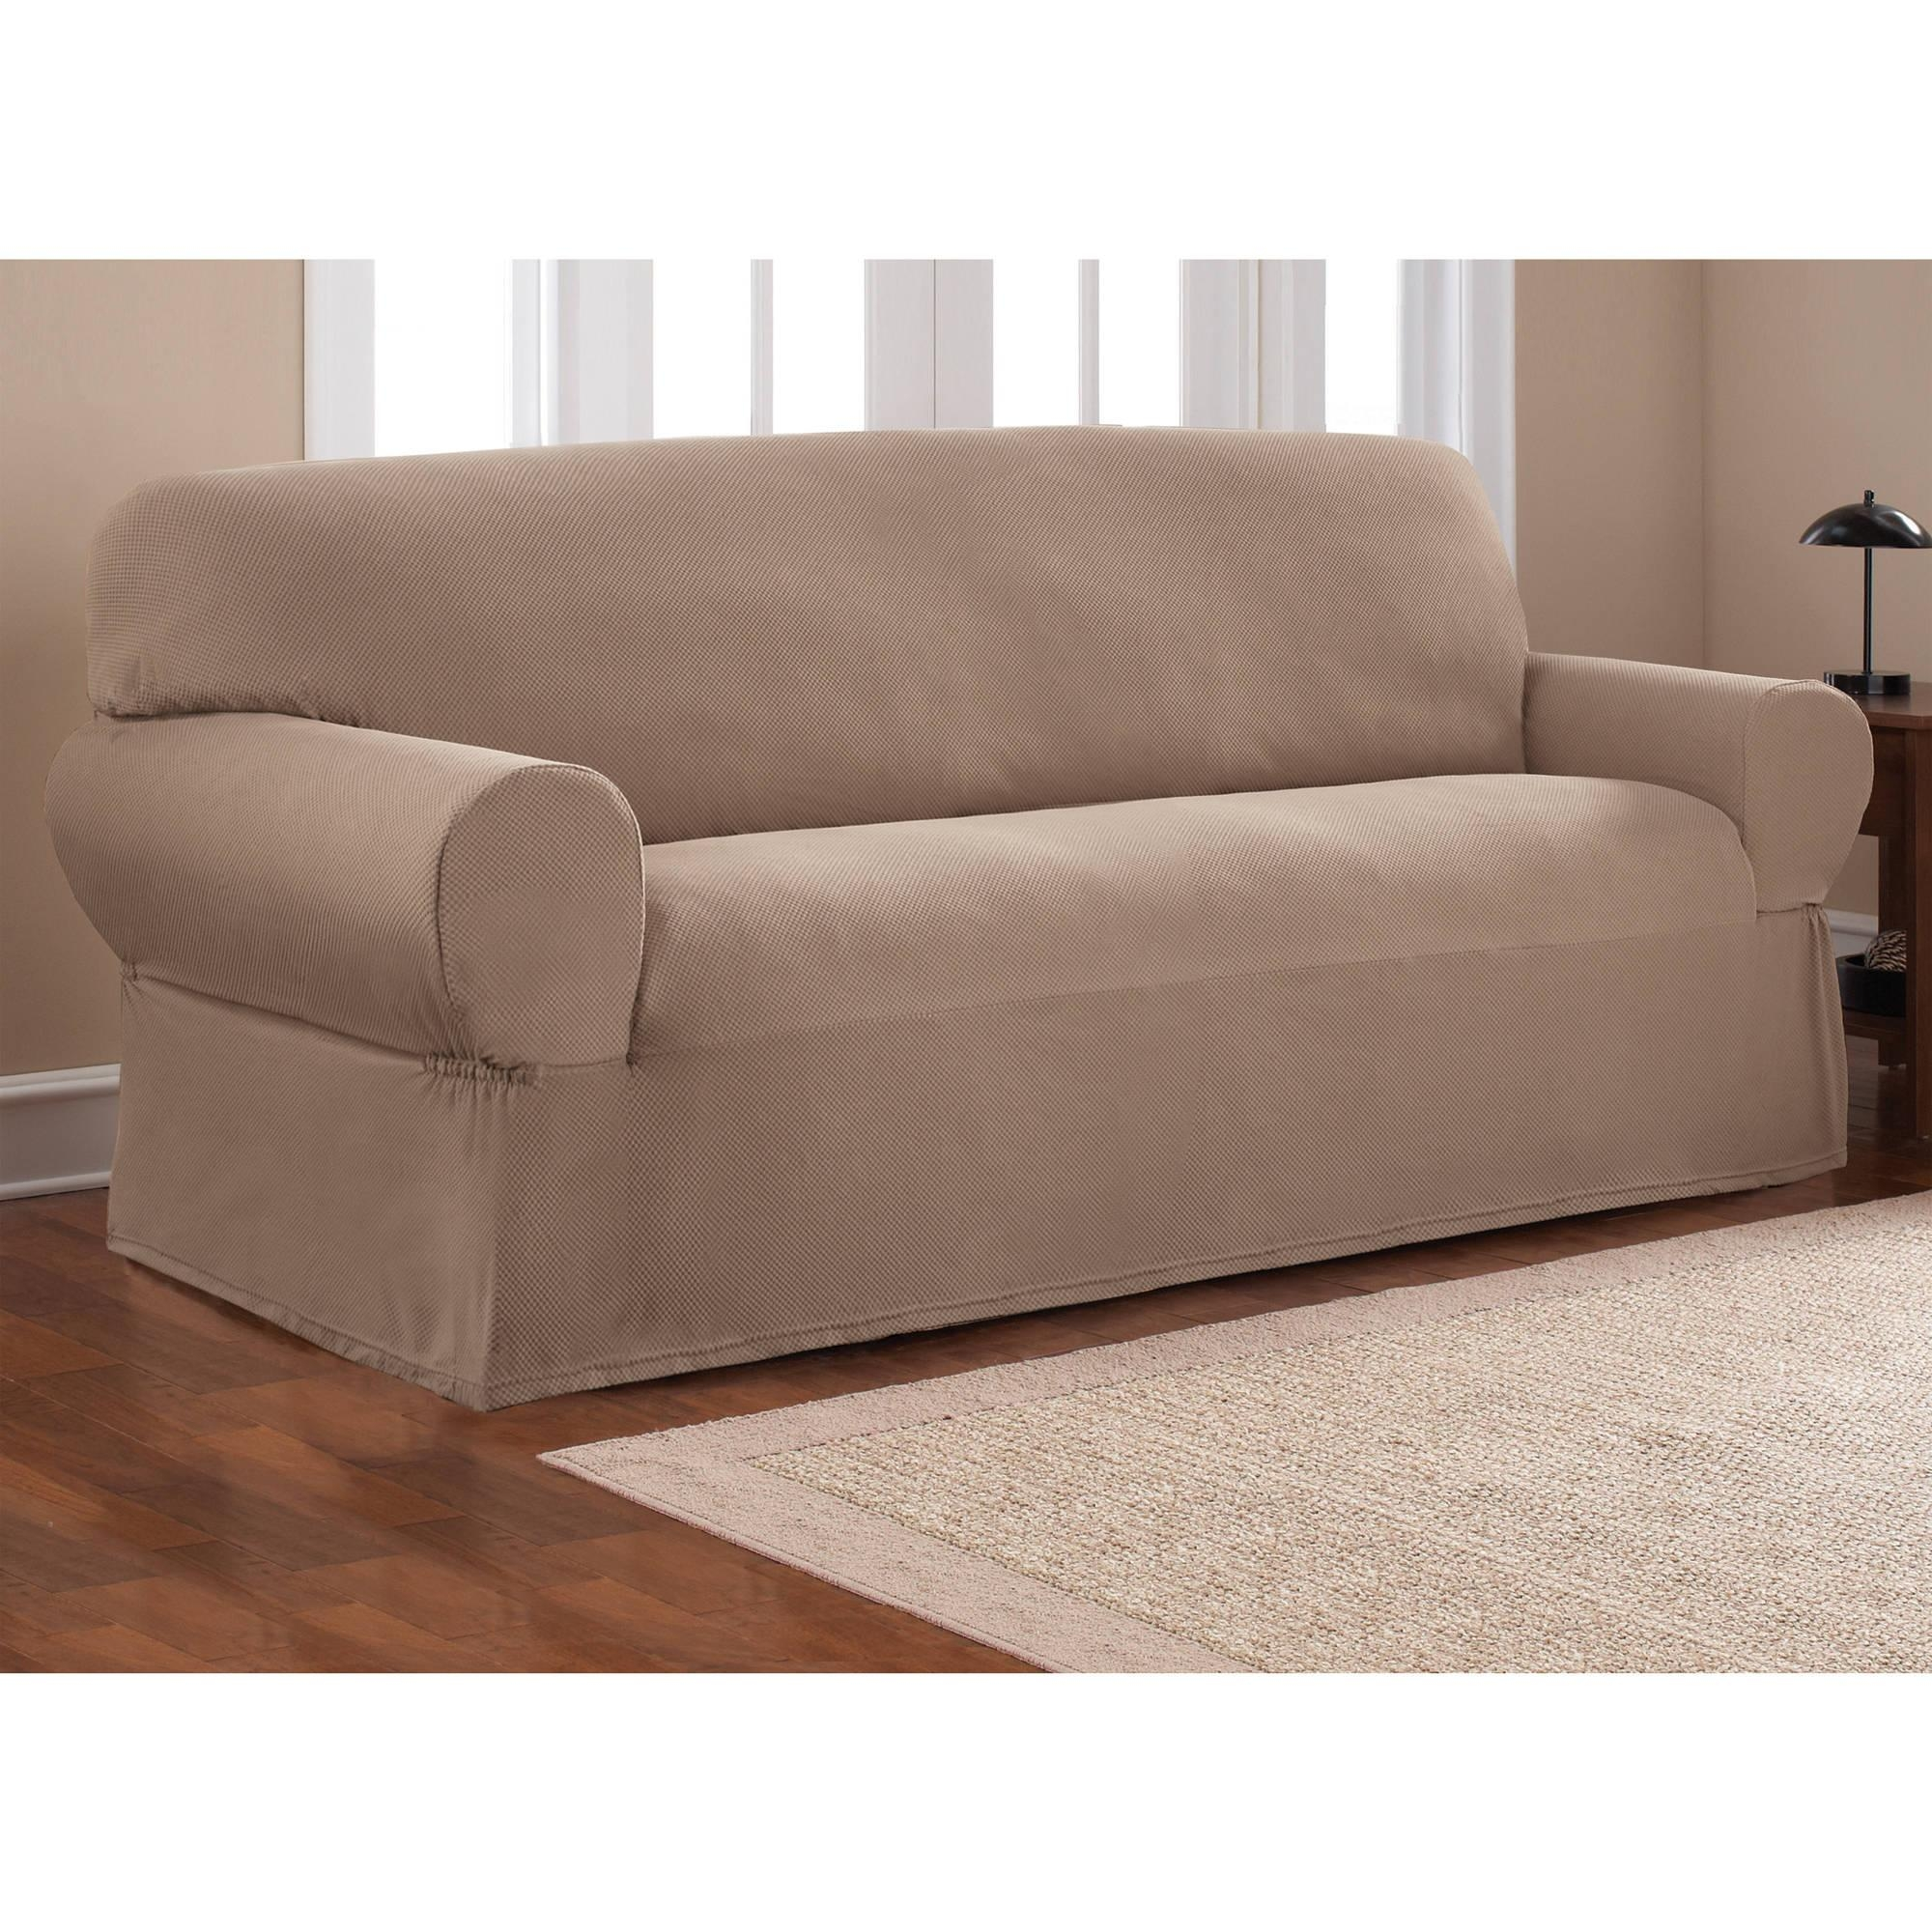 Mainstays 1 Piece Stretch Fabric Sofa Slipcover – Walmart Intended For Canvas Sofas Covers (Image 13 of 20)